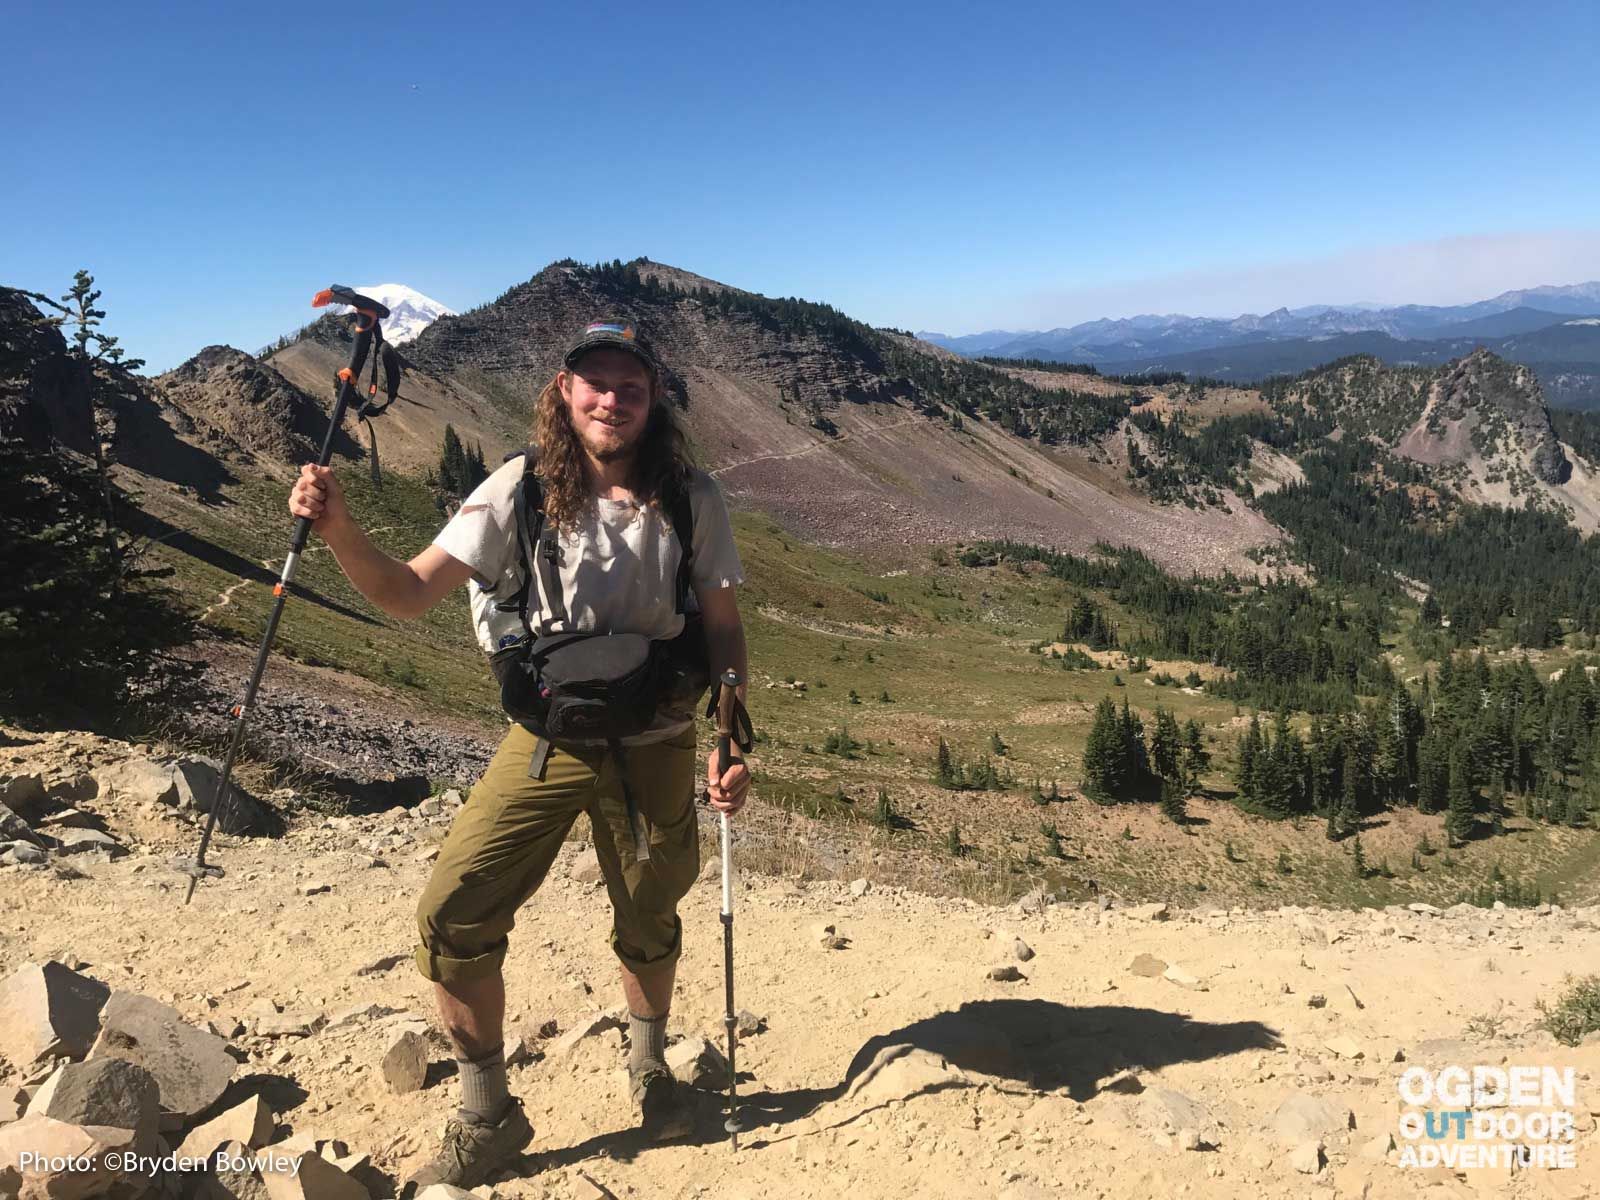 Bryden Bowley on the Pacific Crest Trail